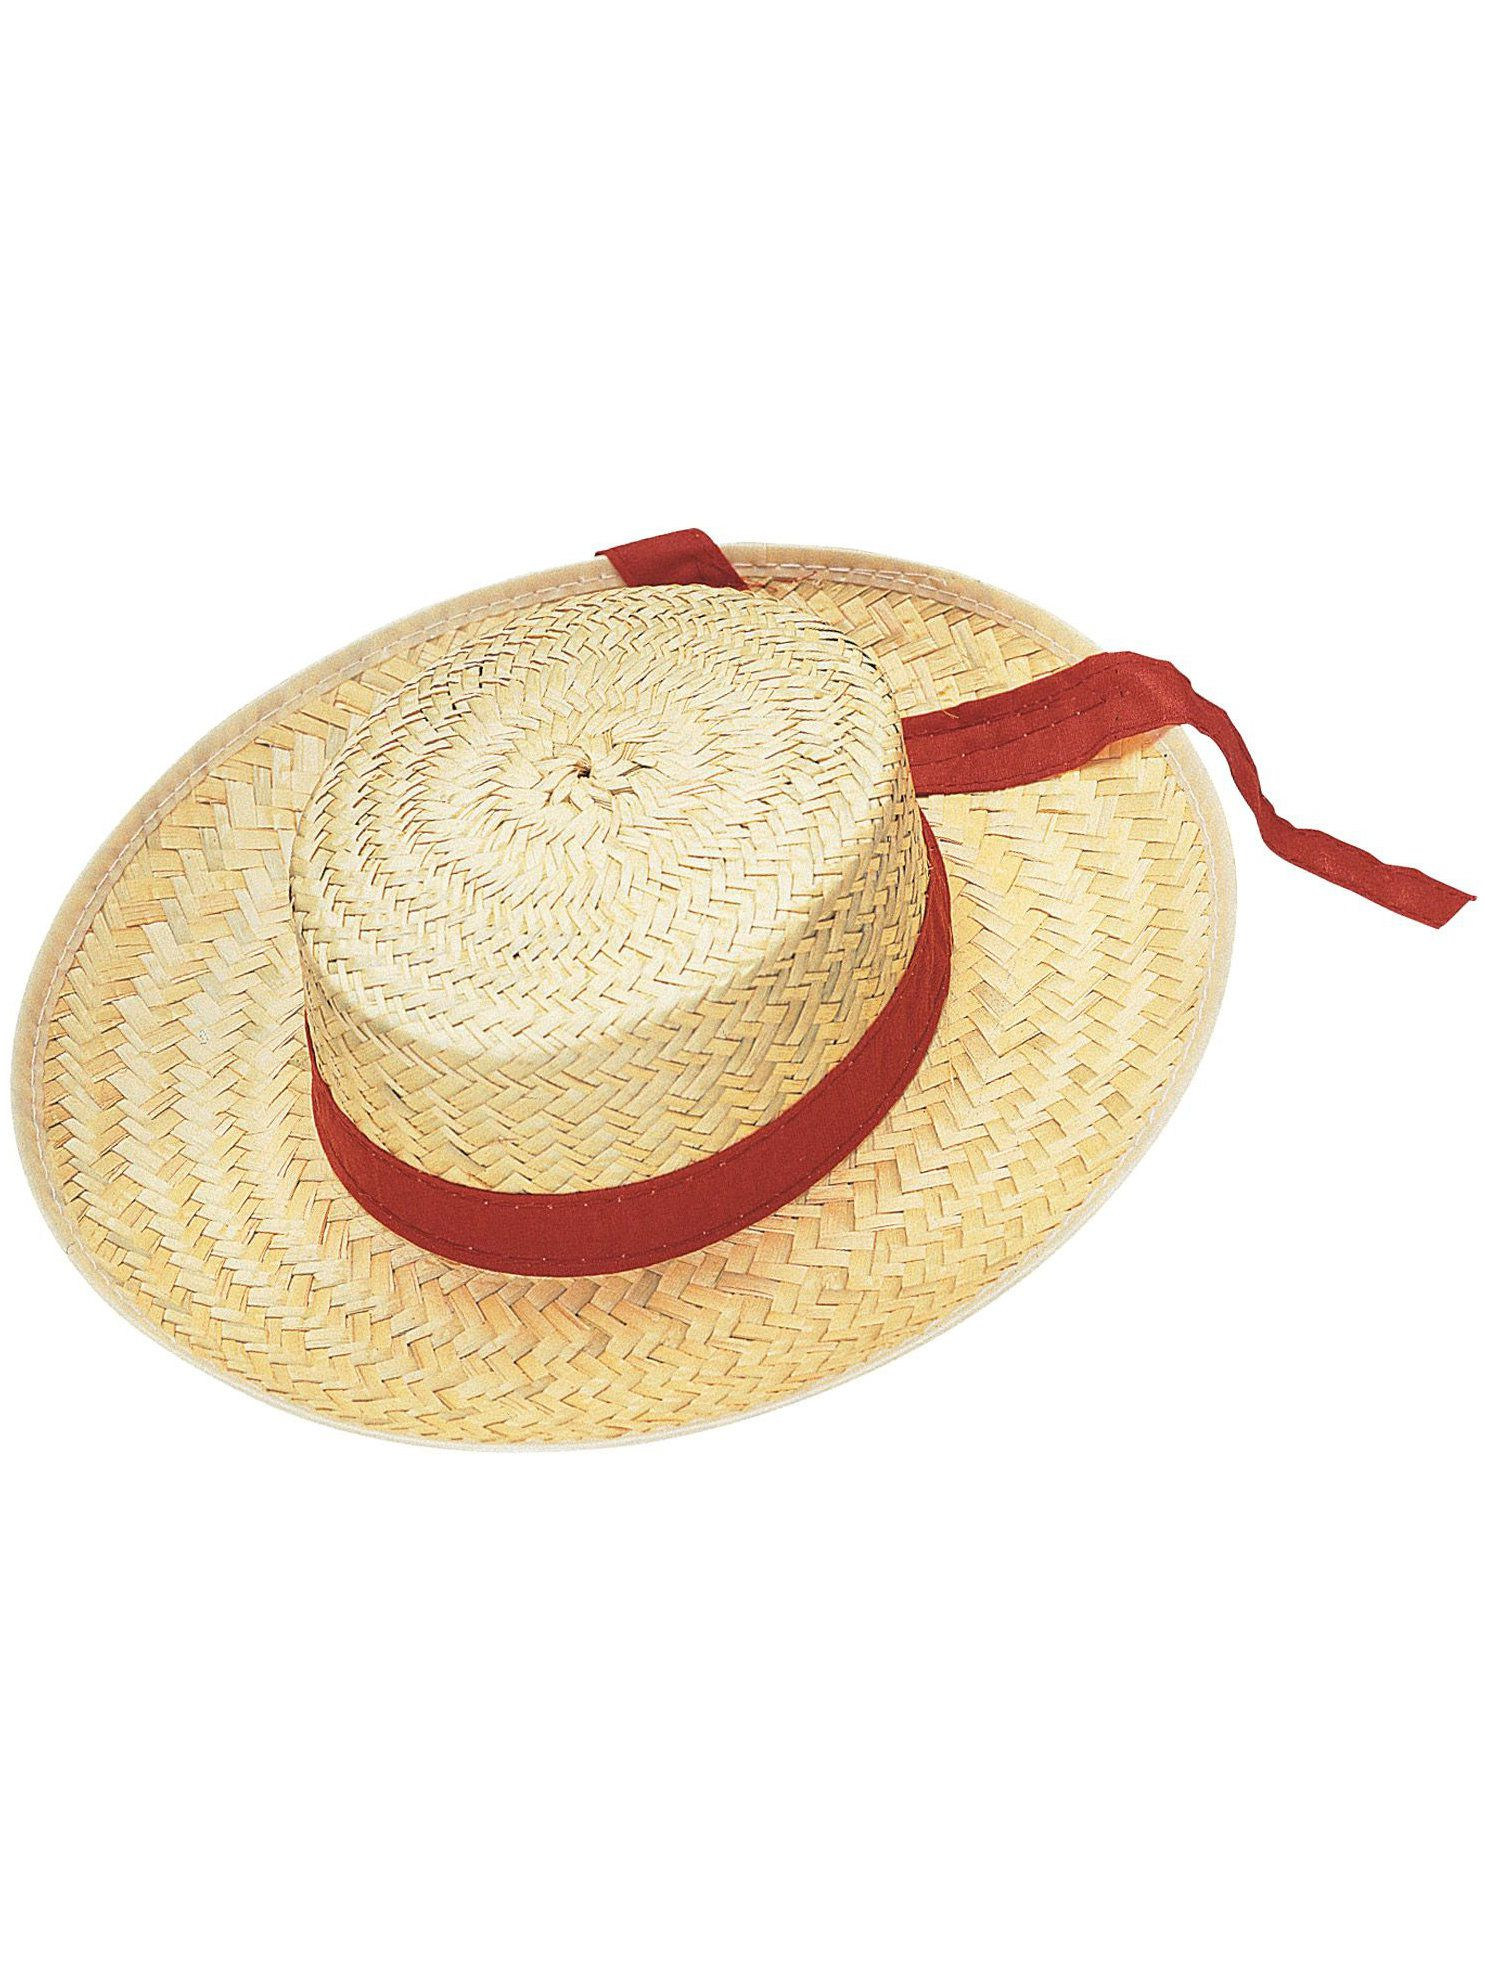 002ad3257e6 Straw Gondolier Hat Adult - Costume Accessories for 2018